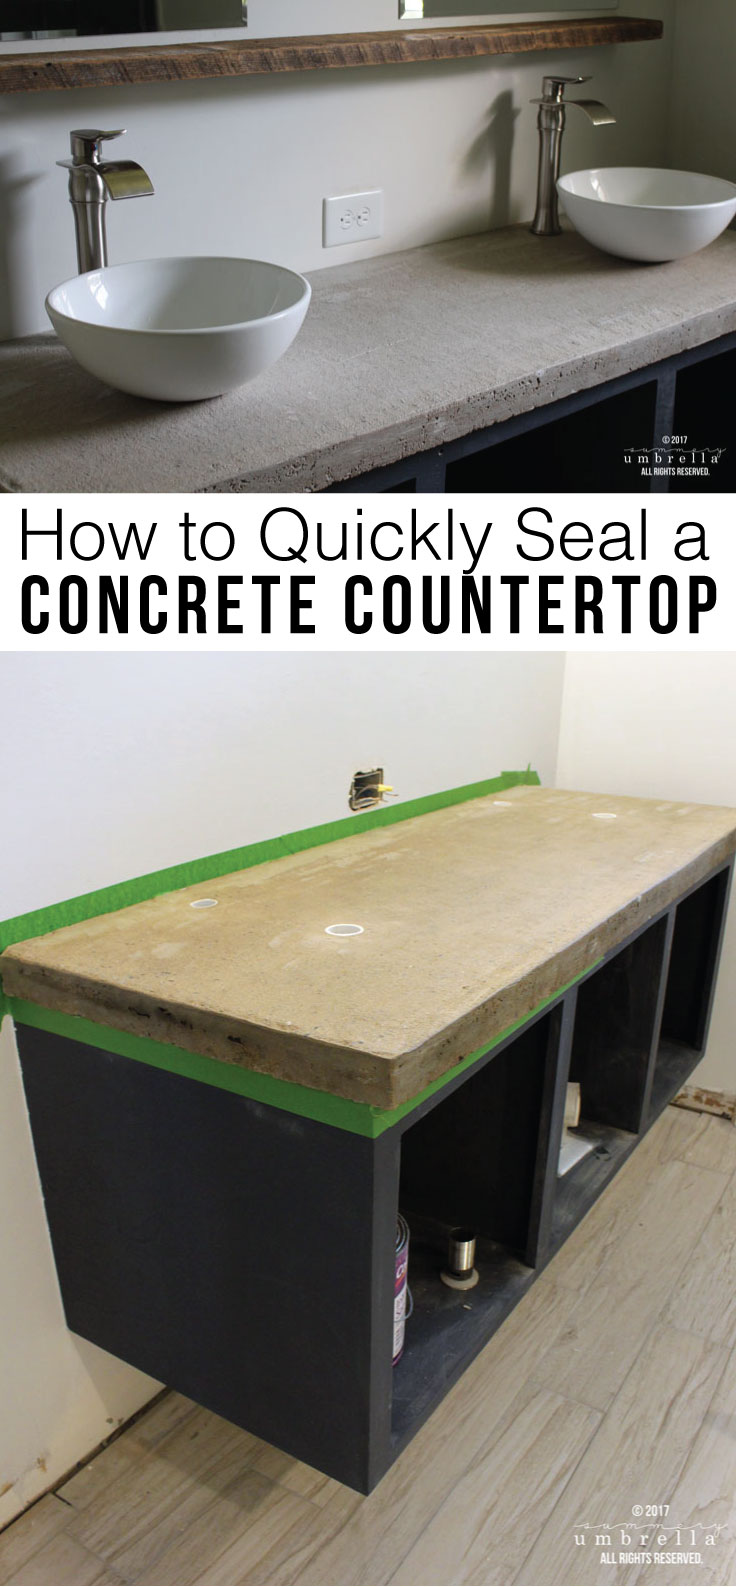 Do you love that industrial look of a concrete countertop, but not sure how well it would hold up? Let me show you how seal it up to get this look NOW!